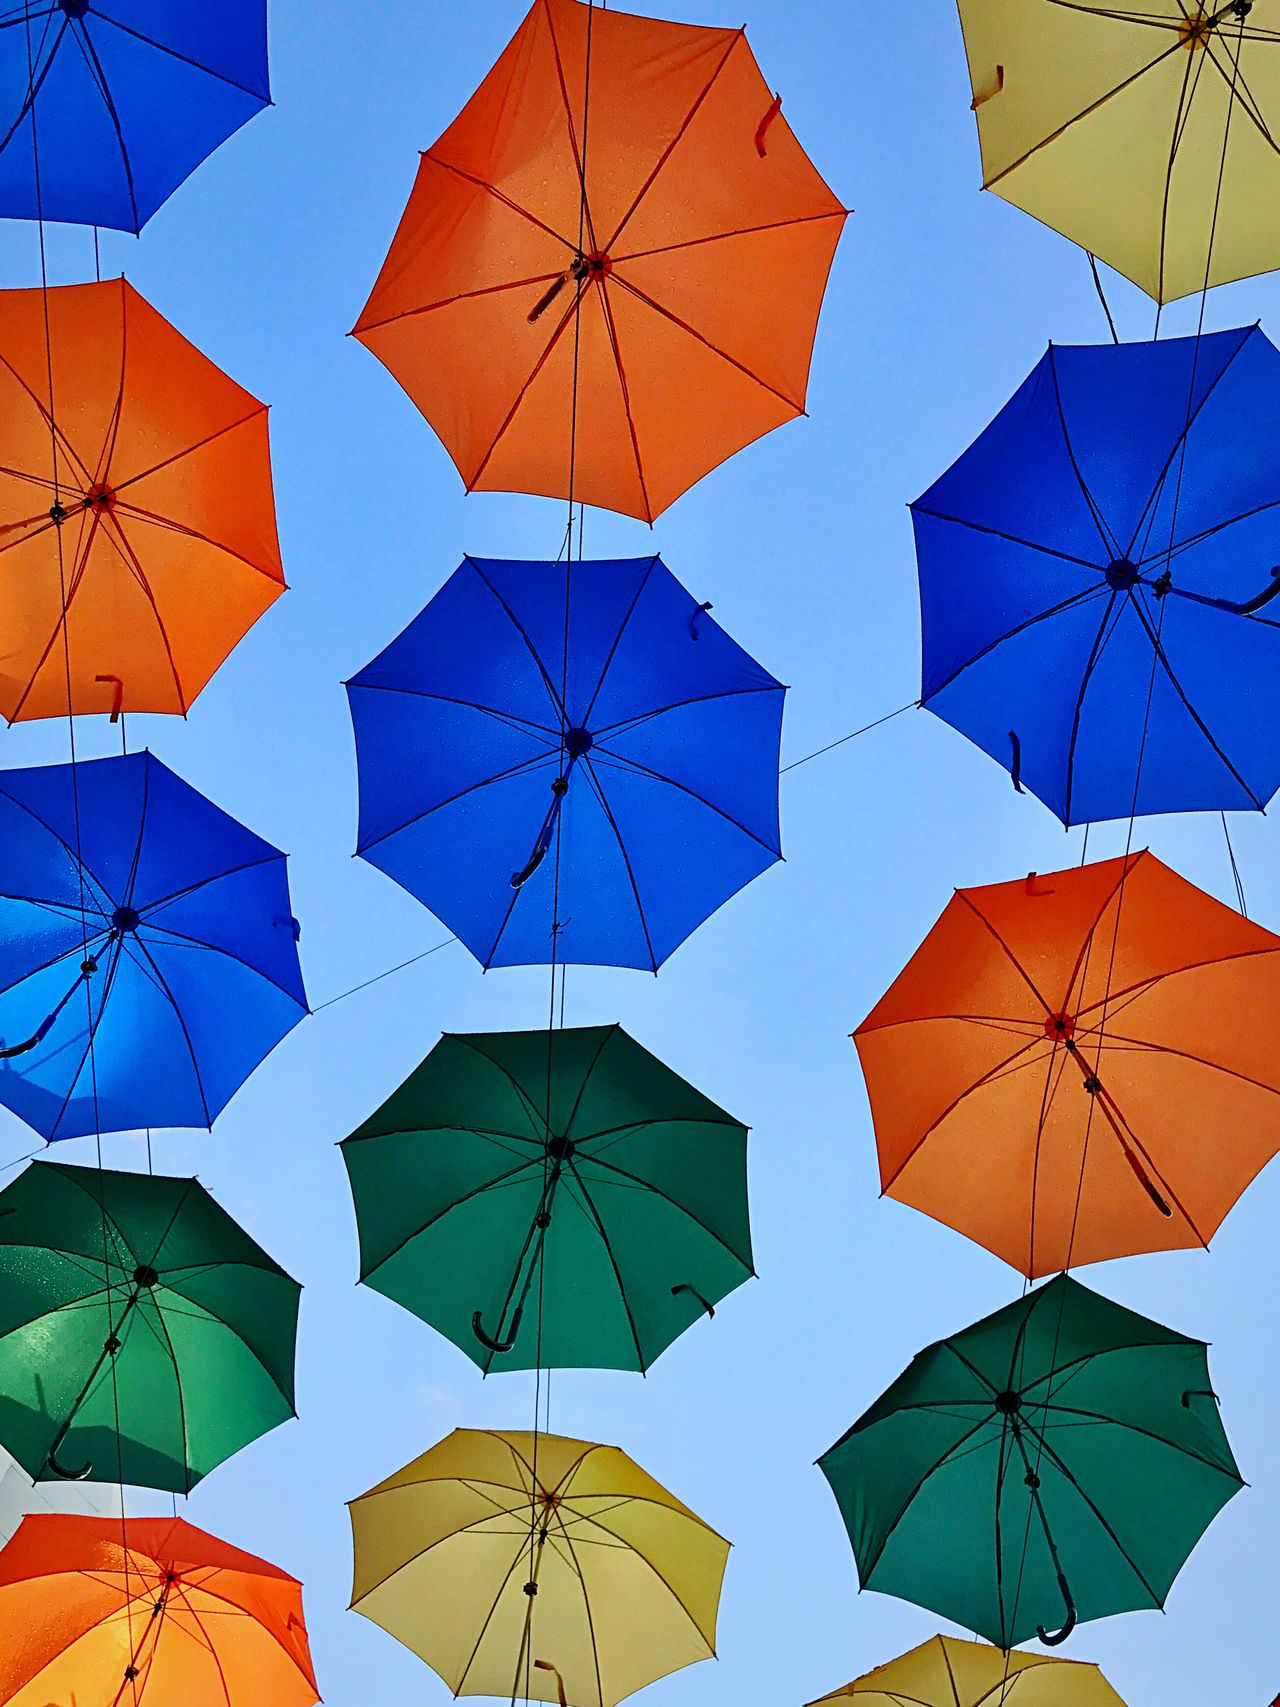 EyeEm Selects Umbrella Protection Full Frame Multi Colored Low Angle View Composition Blue Variation Day Neat Crowd Modern Clear Sky Outdoors People Sky Umbrella Alley Neon Life